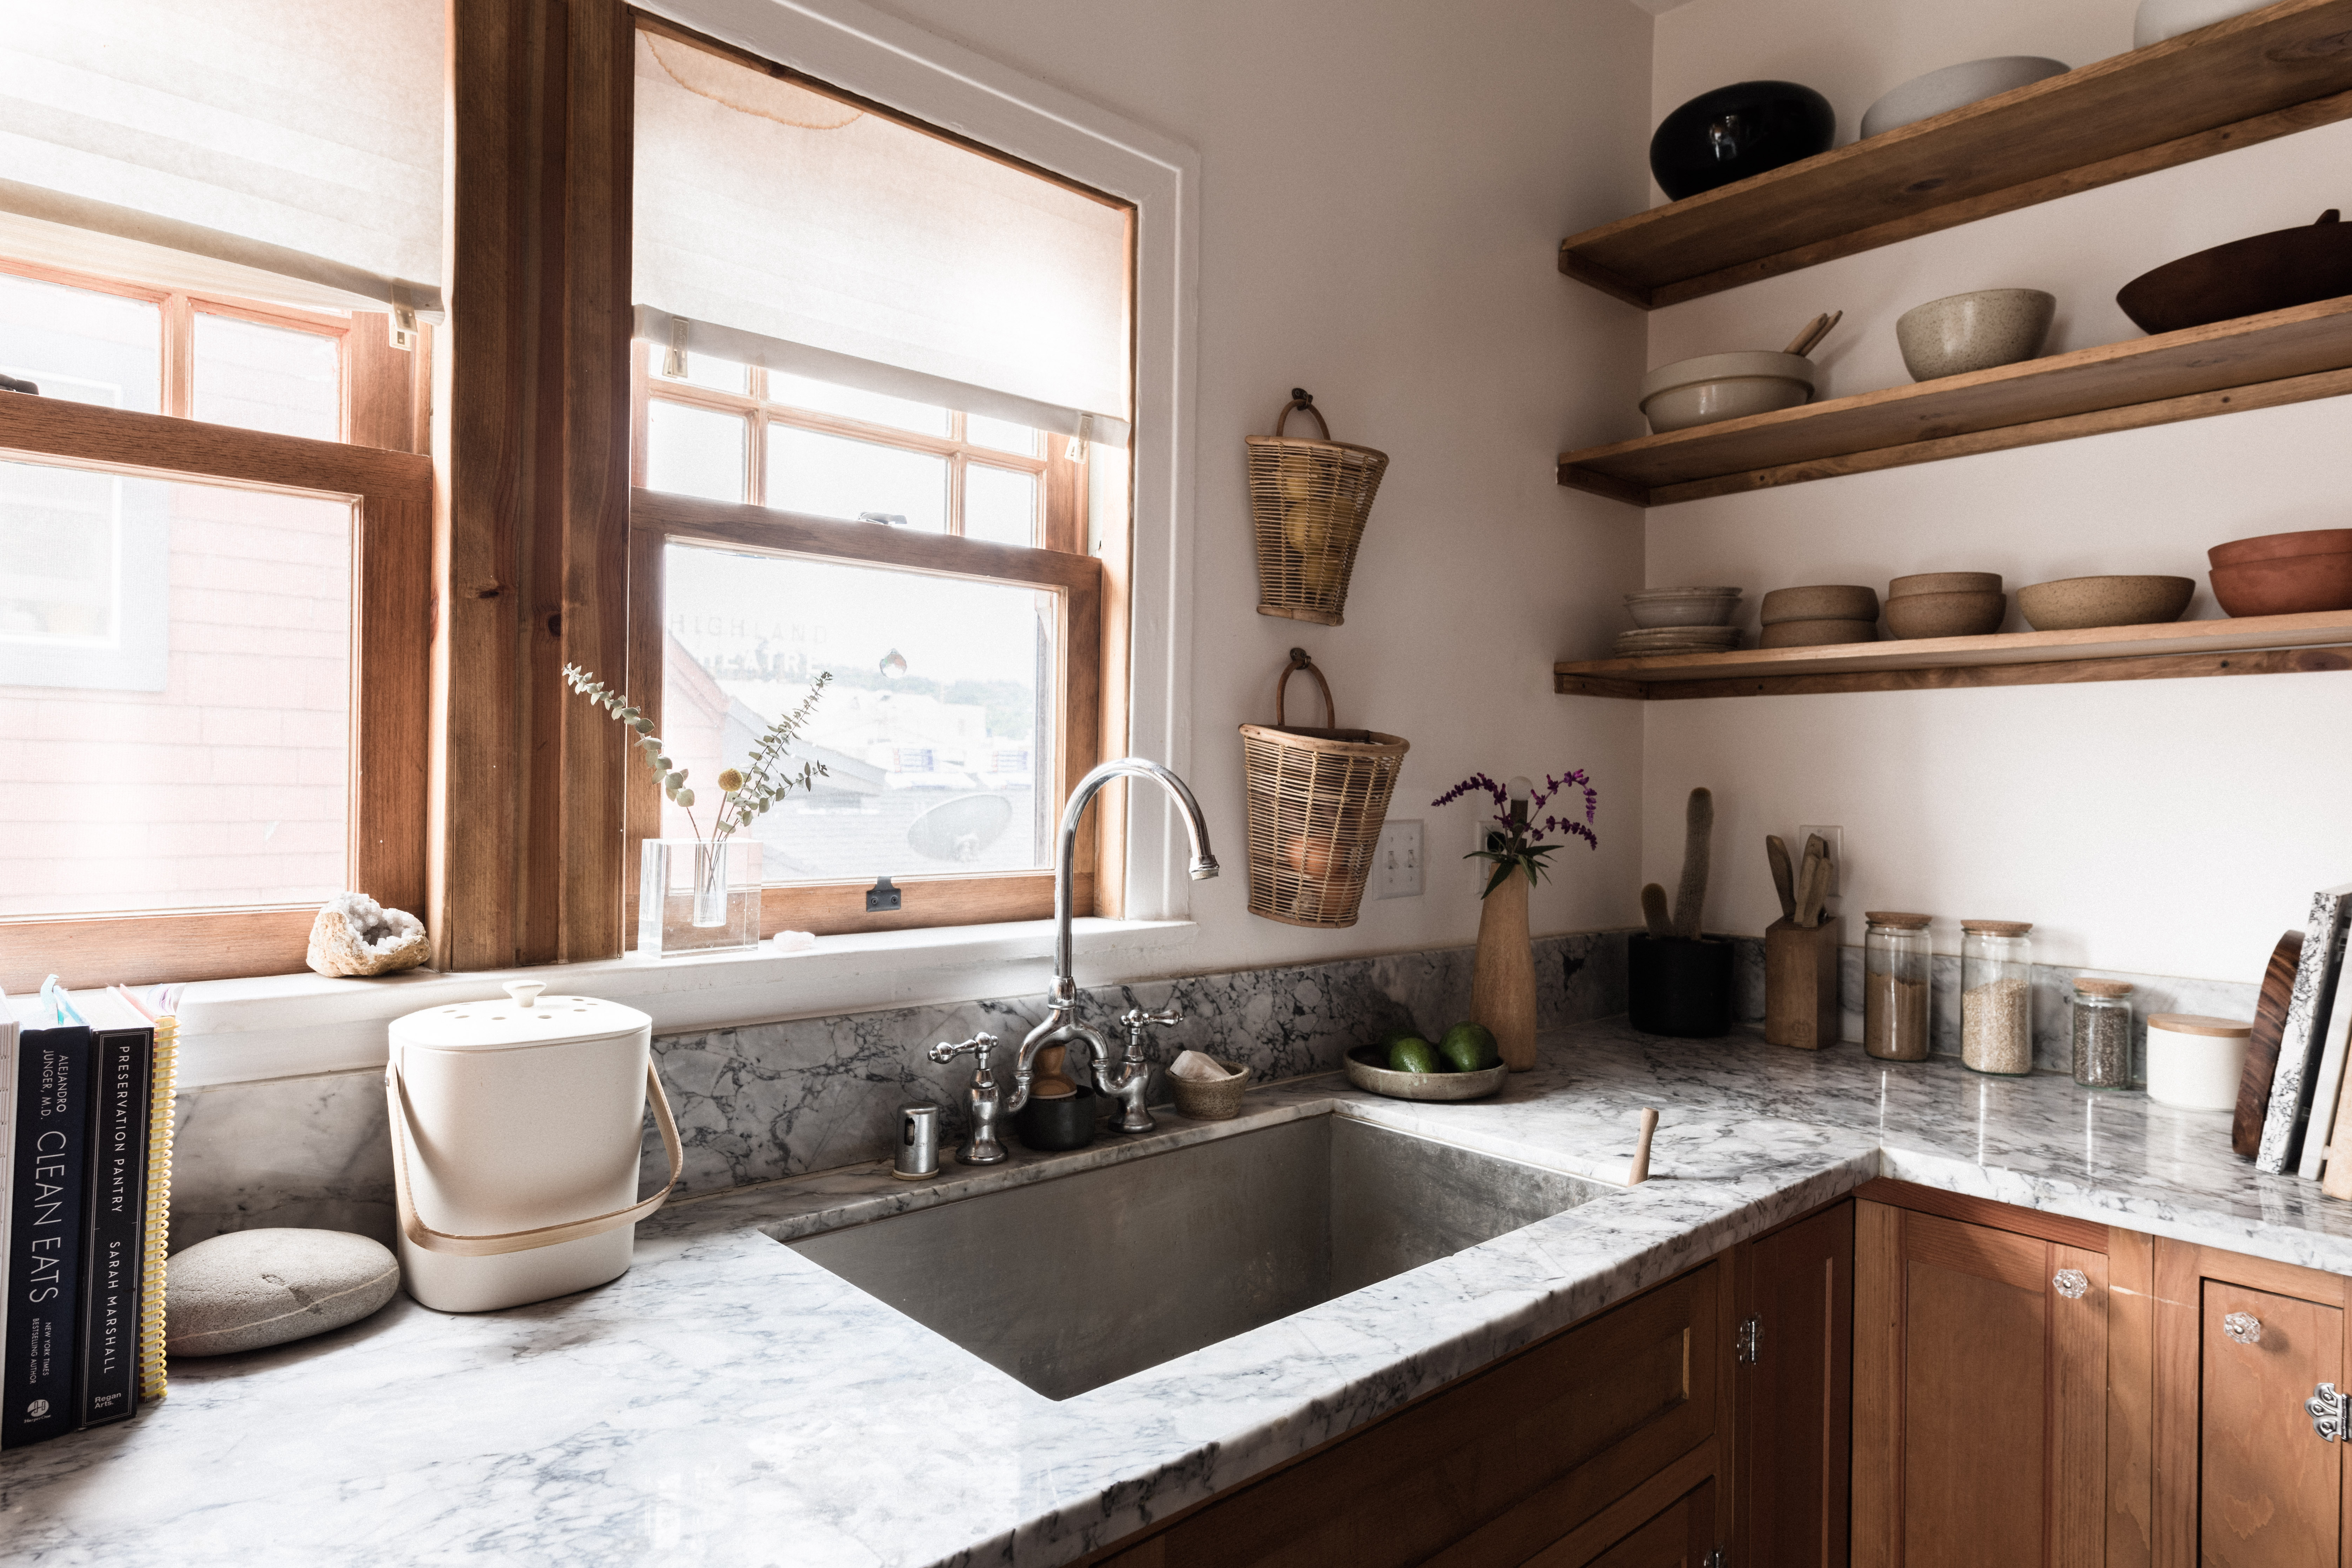 Kitchen Sink Plumbing Code What You Need To Know Hunker